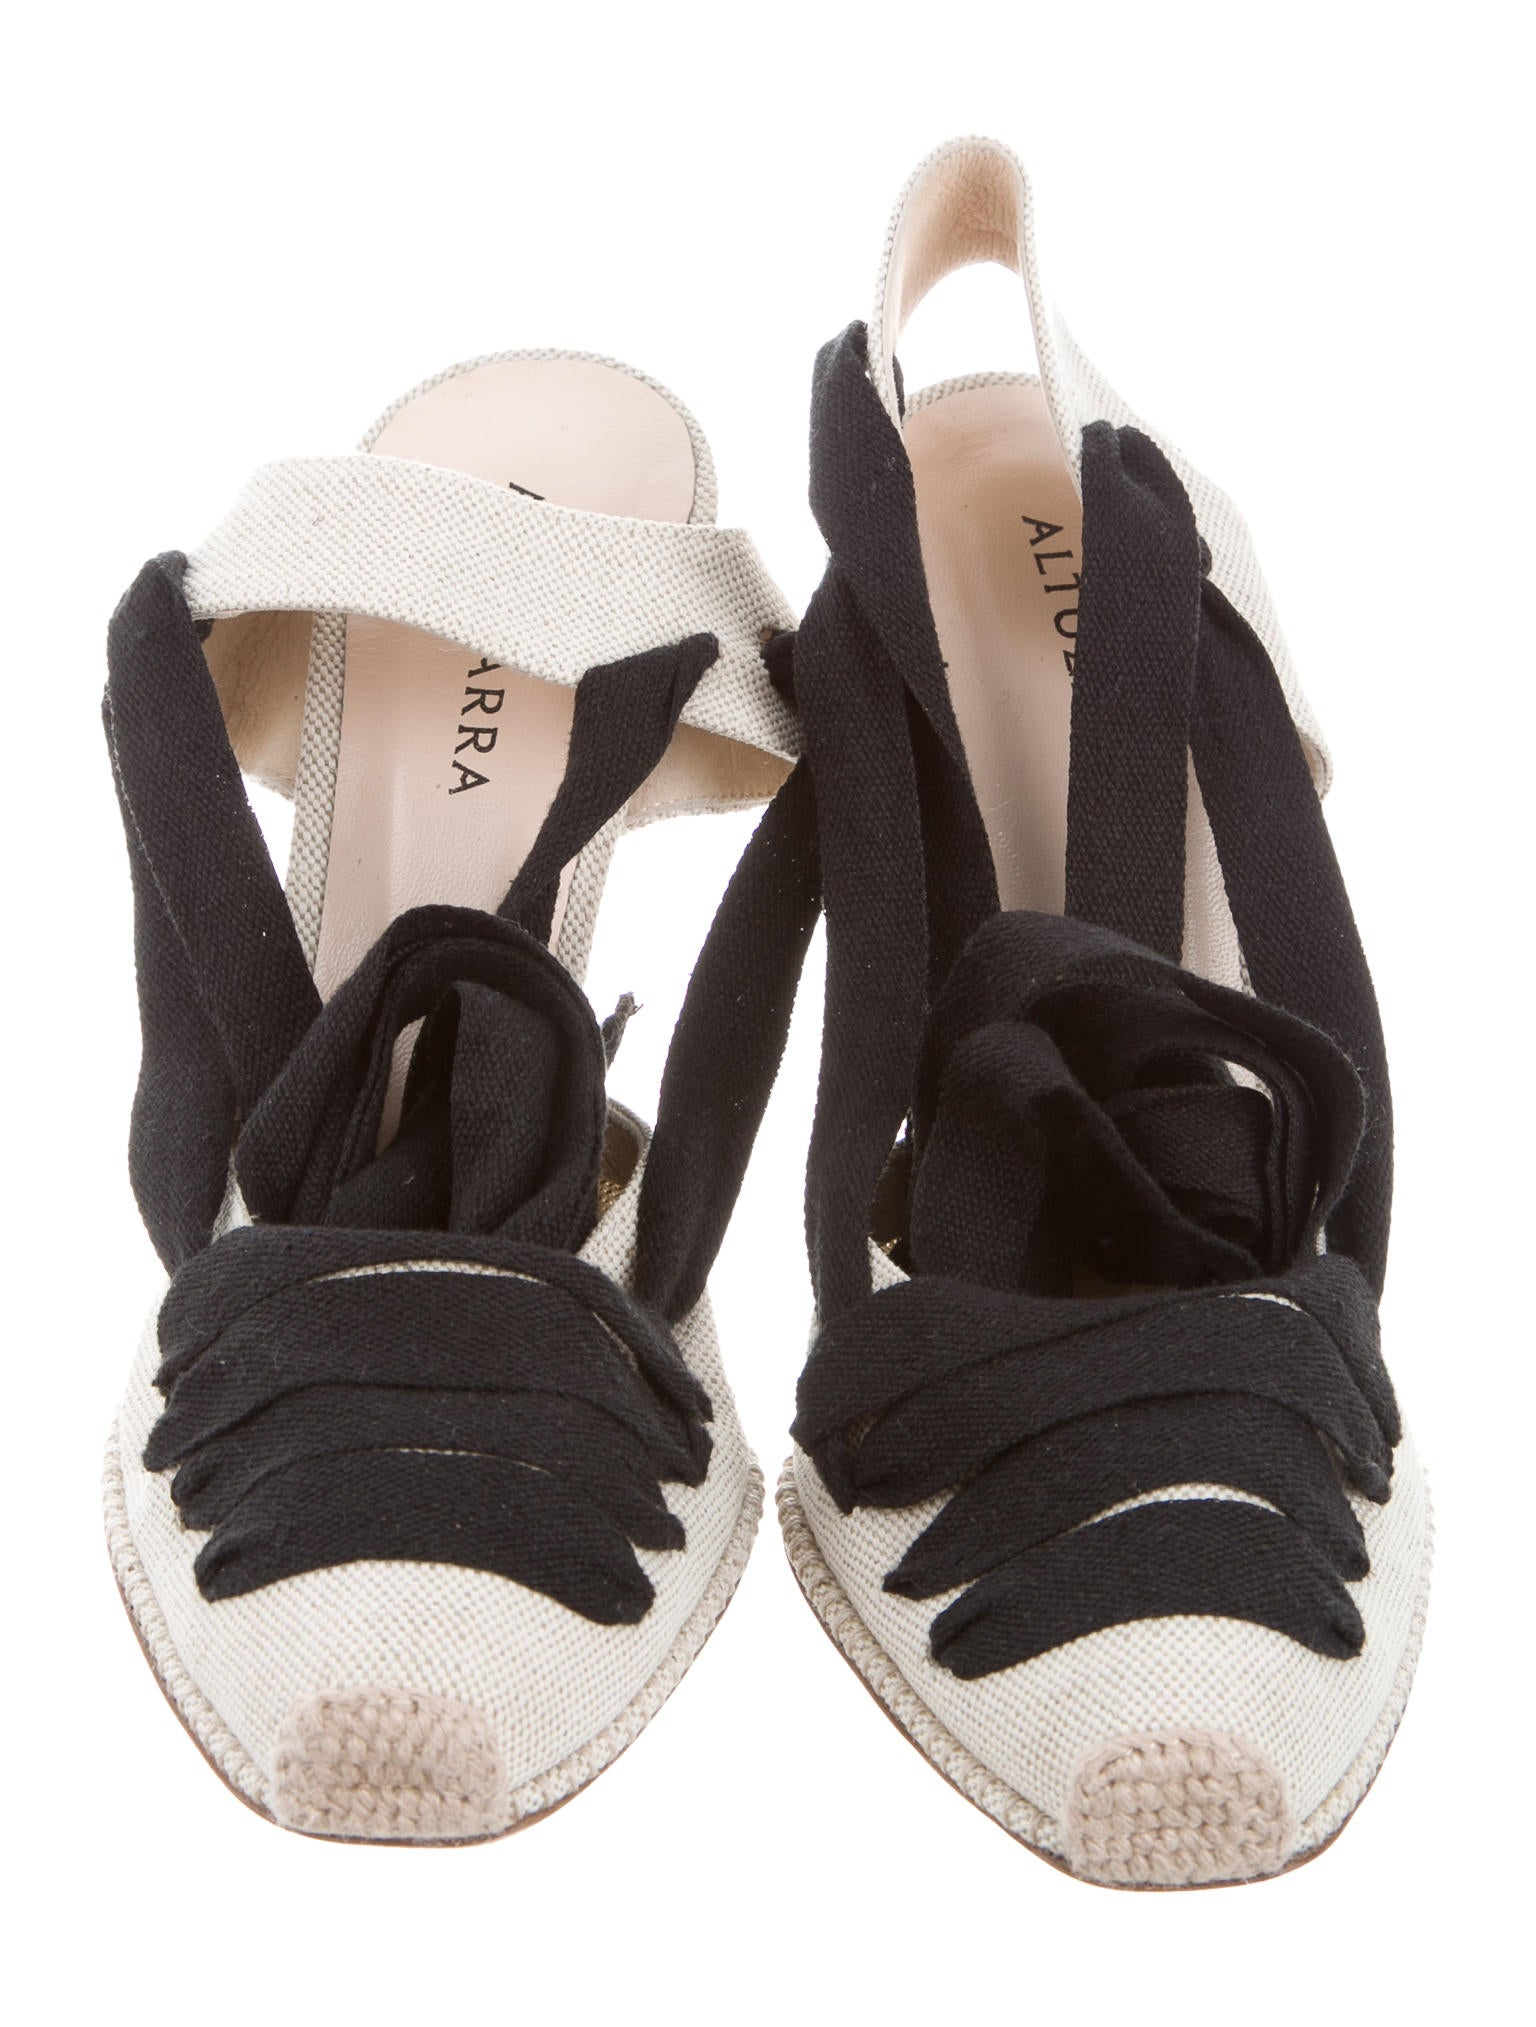 Comfortable casuals are essential to every footwear collection. Fashioned in an all-over black canvas fabric, these pumps feature a lace-up fastening and a white contrast sole complete with a piping design. Combining style and practicality, these timeless pumps are ideal for when you are on the go.